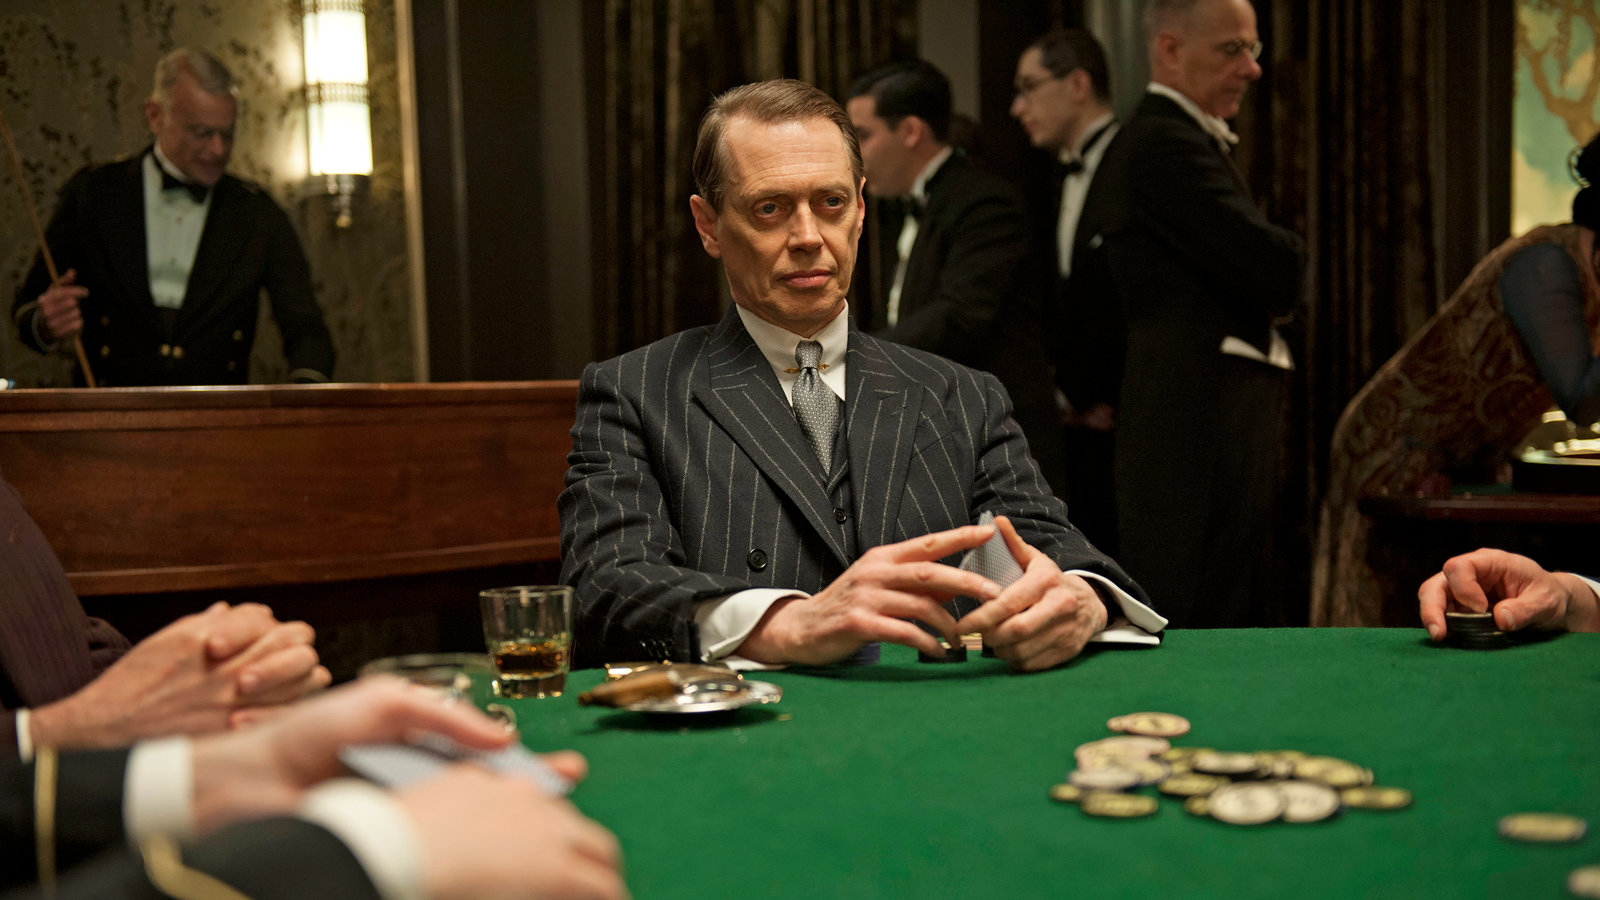 Boardwalk Empire (2010–2014) by Terence Winter